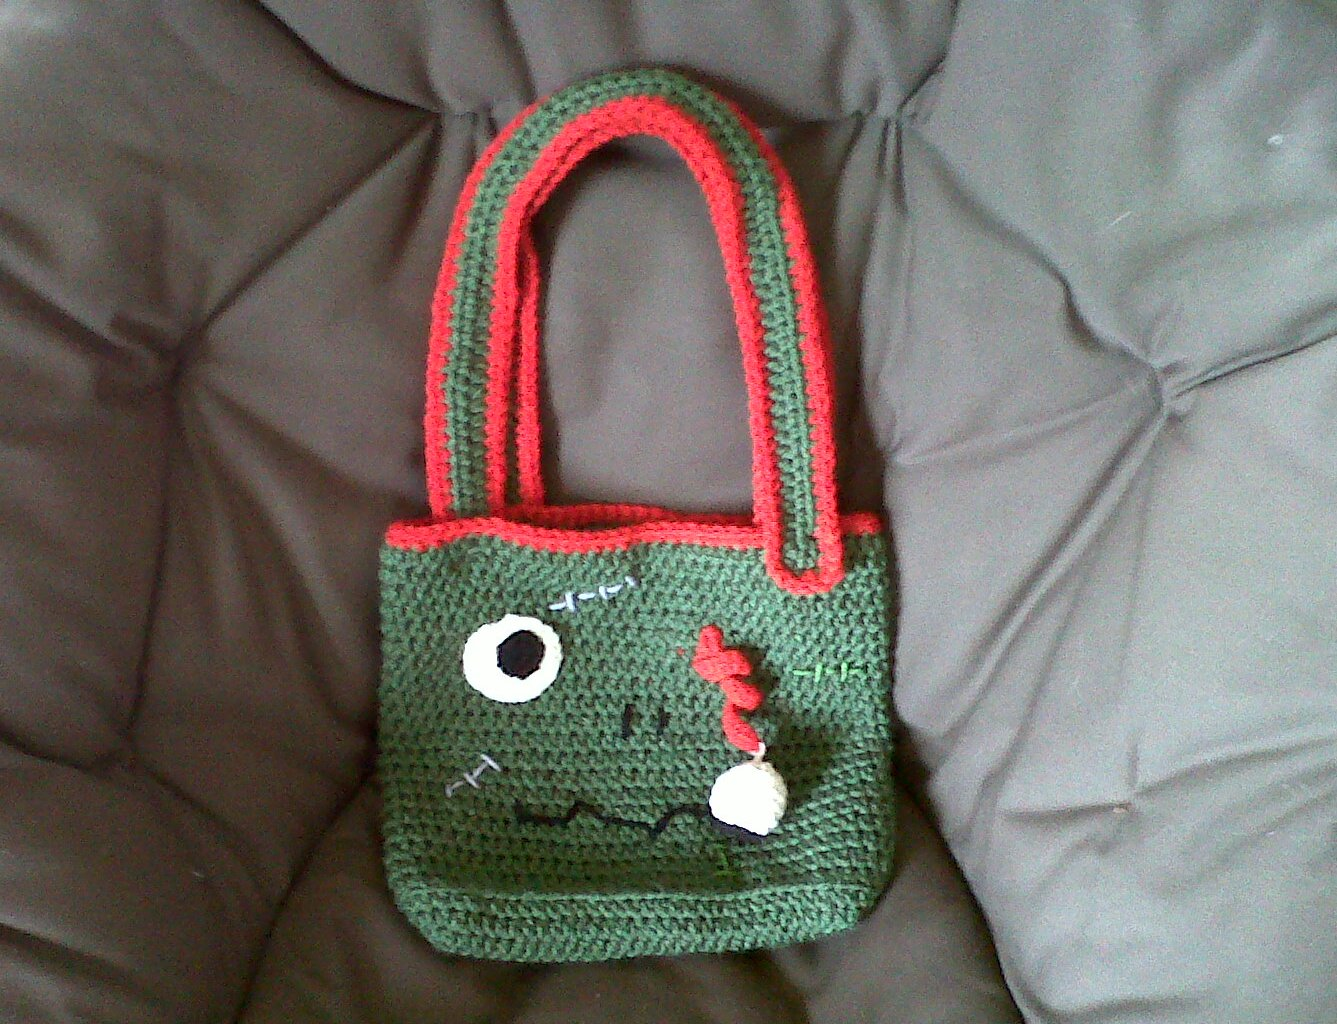 Free Crochet Patterns Zombie : TheCrochetZombie: Free The Crochet Zombie Bag Pattern